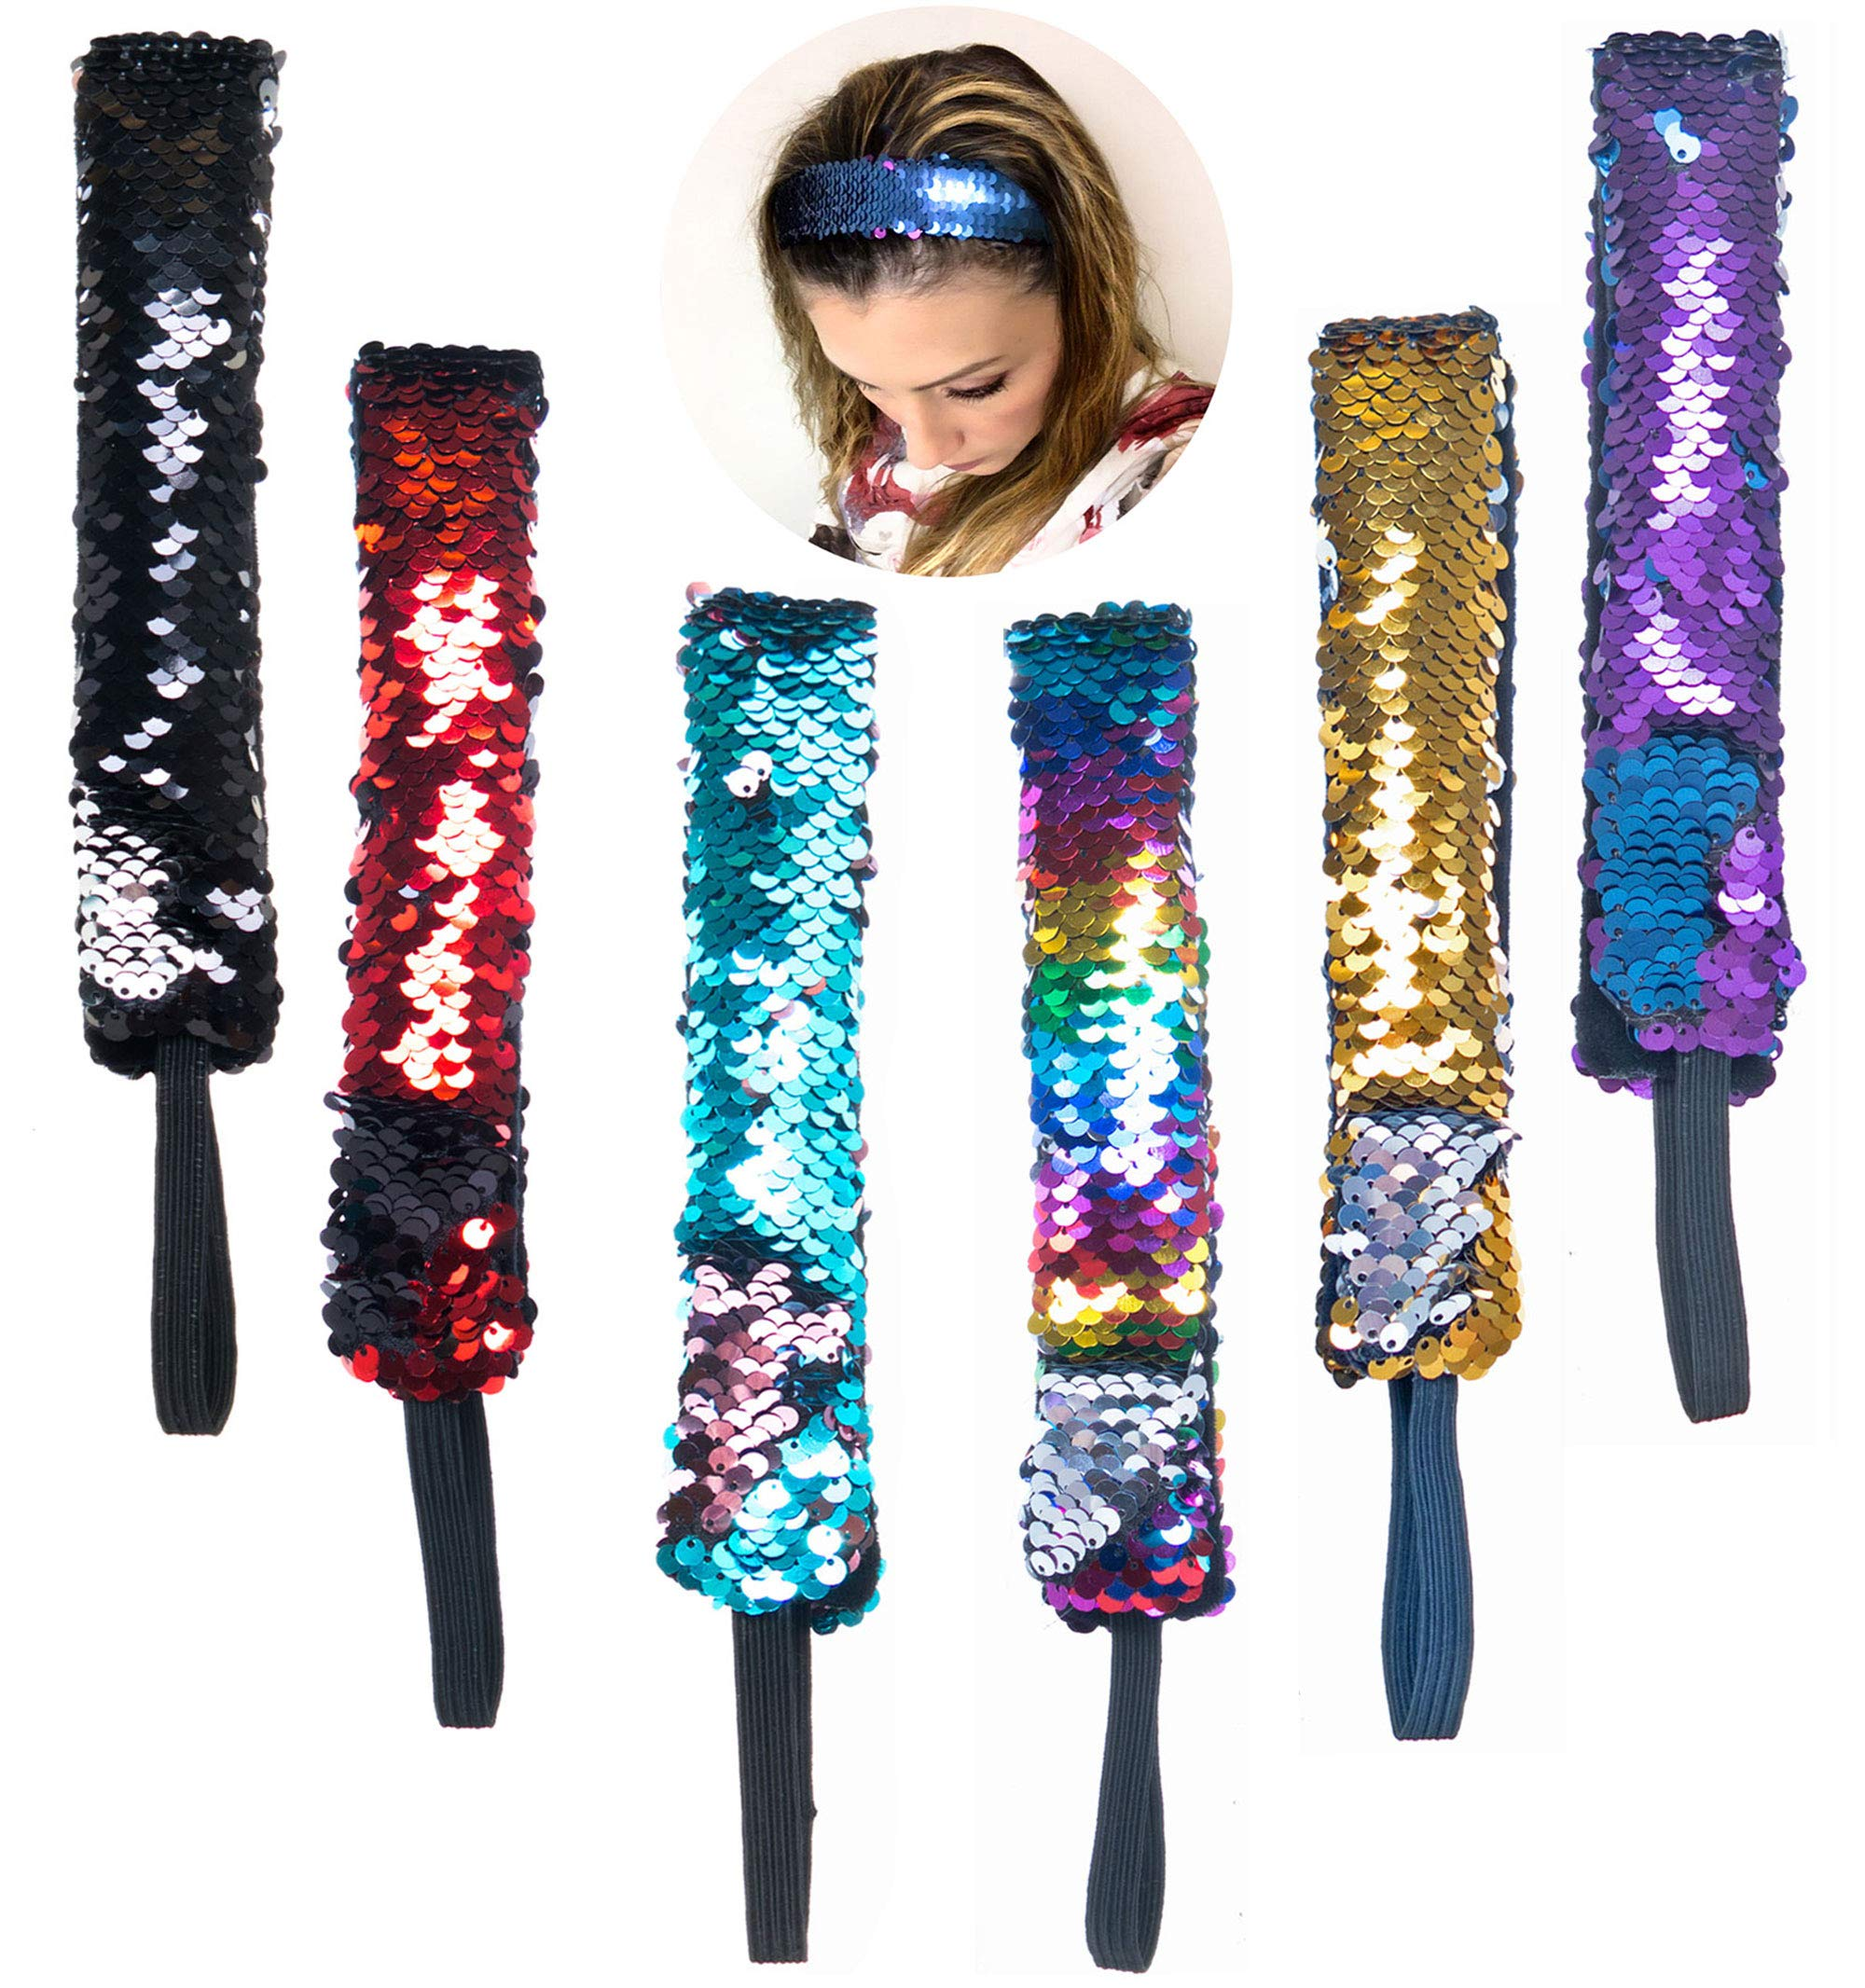 Hair Accessories for Girls and Women 6 PCs - Mermaid Sequin Sparkly Glitter Headbands with Elastic Cord - Reversible Color Changing Flip Sequins Wide Headband - Mermaid Party Favors – Party Supplies